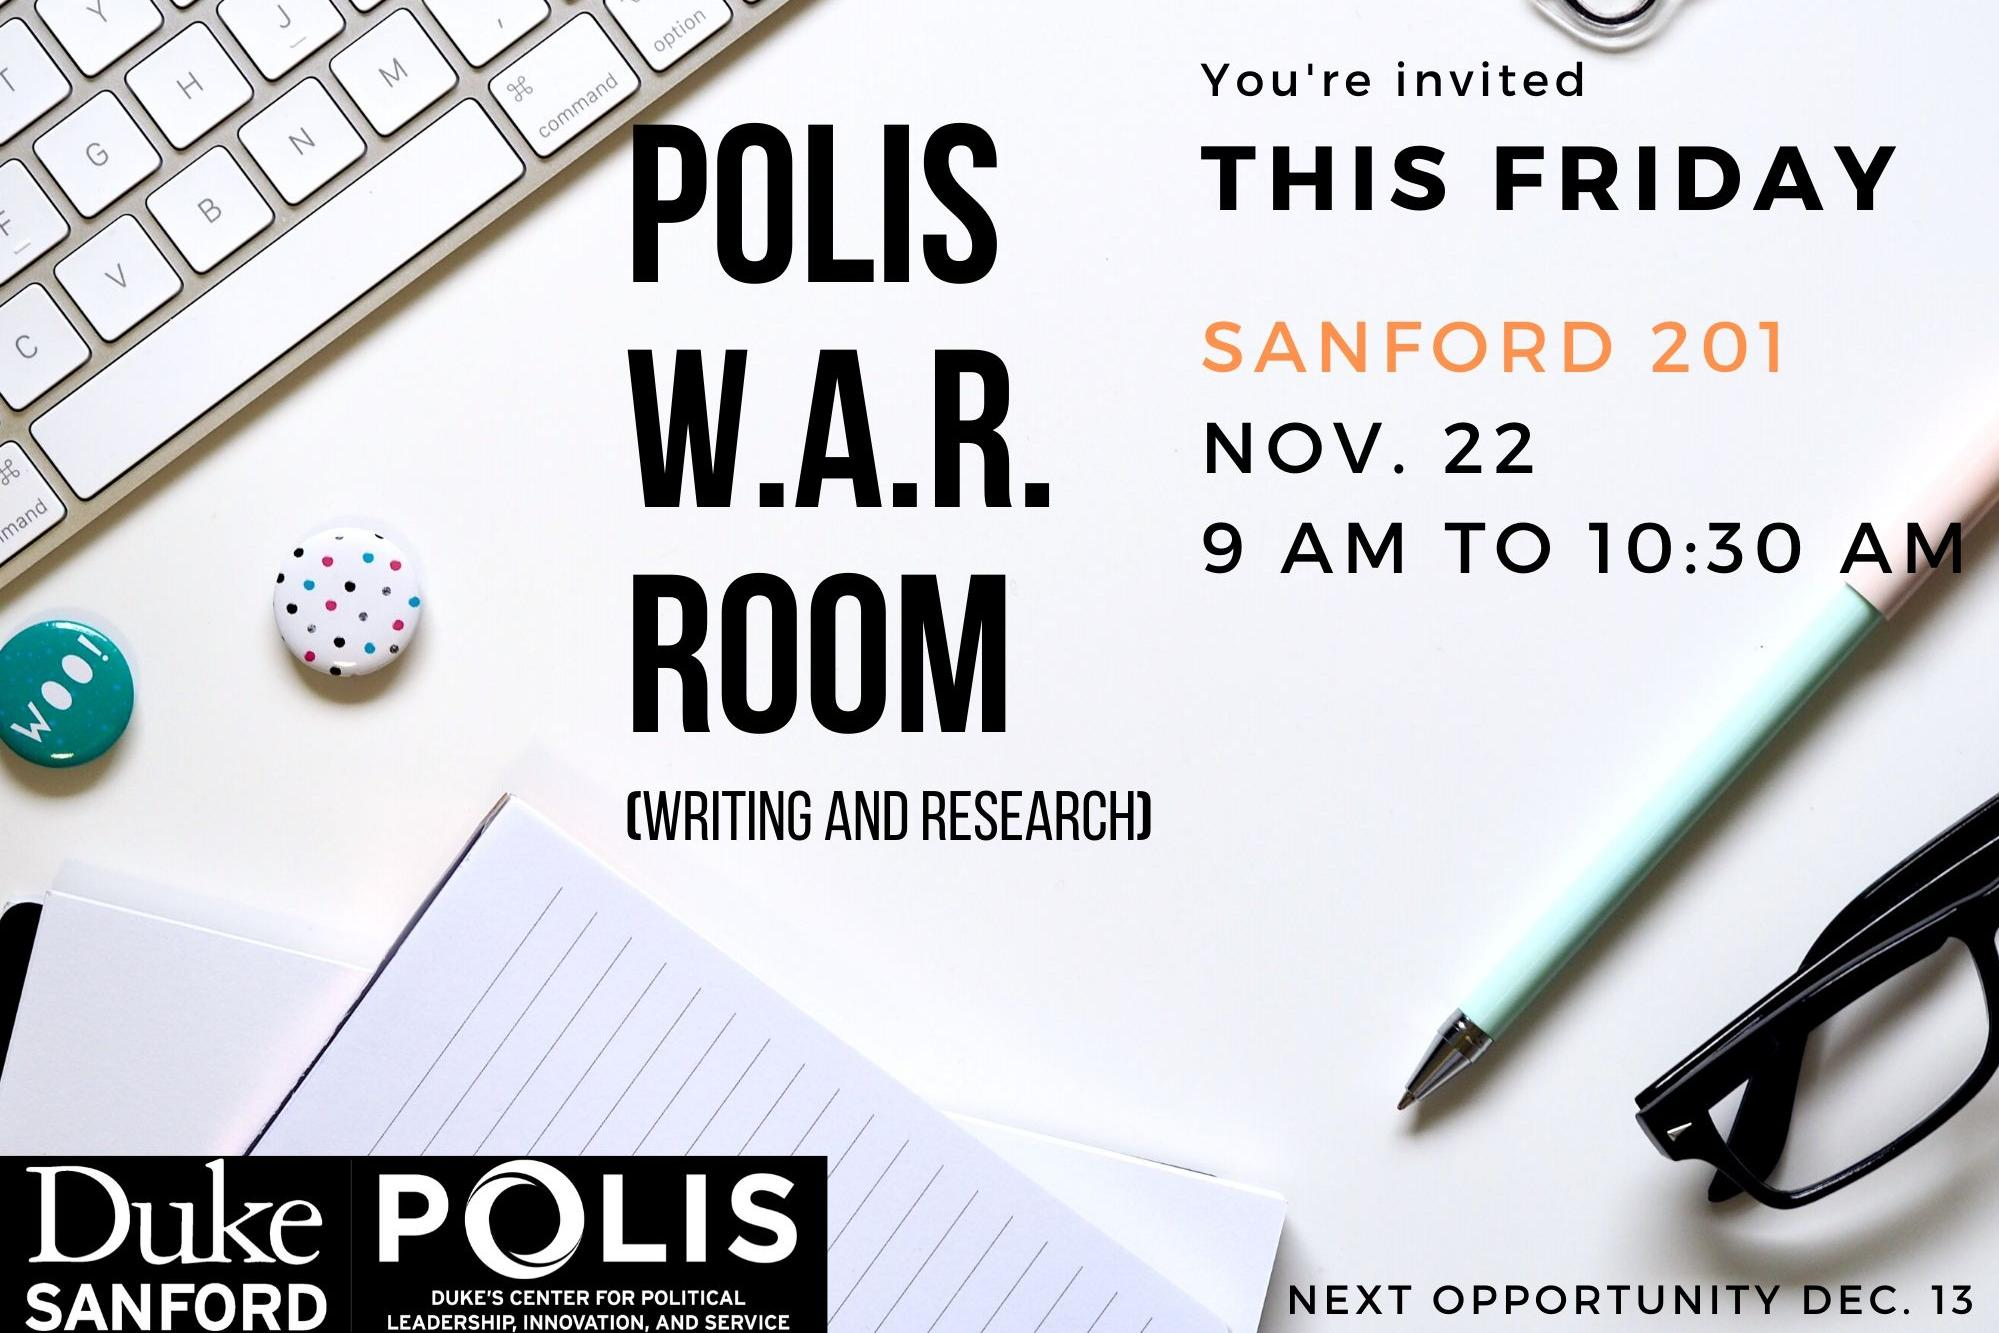 You're invited to the POLIS Writing and Research workshop in Sanford 201 on Friday, November 22 at 9 am.